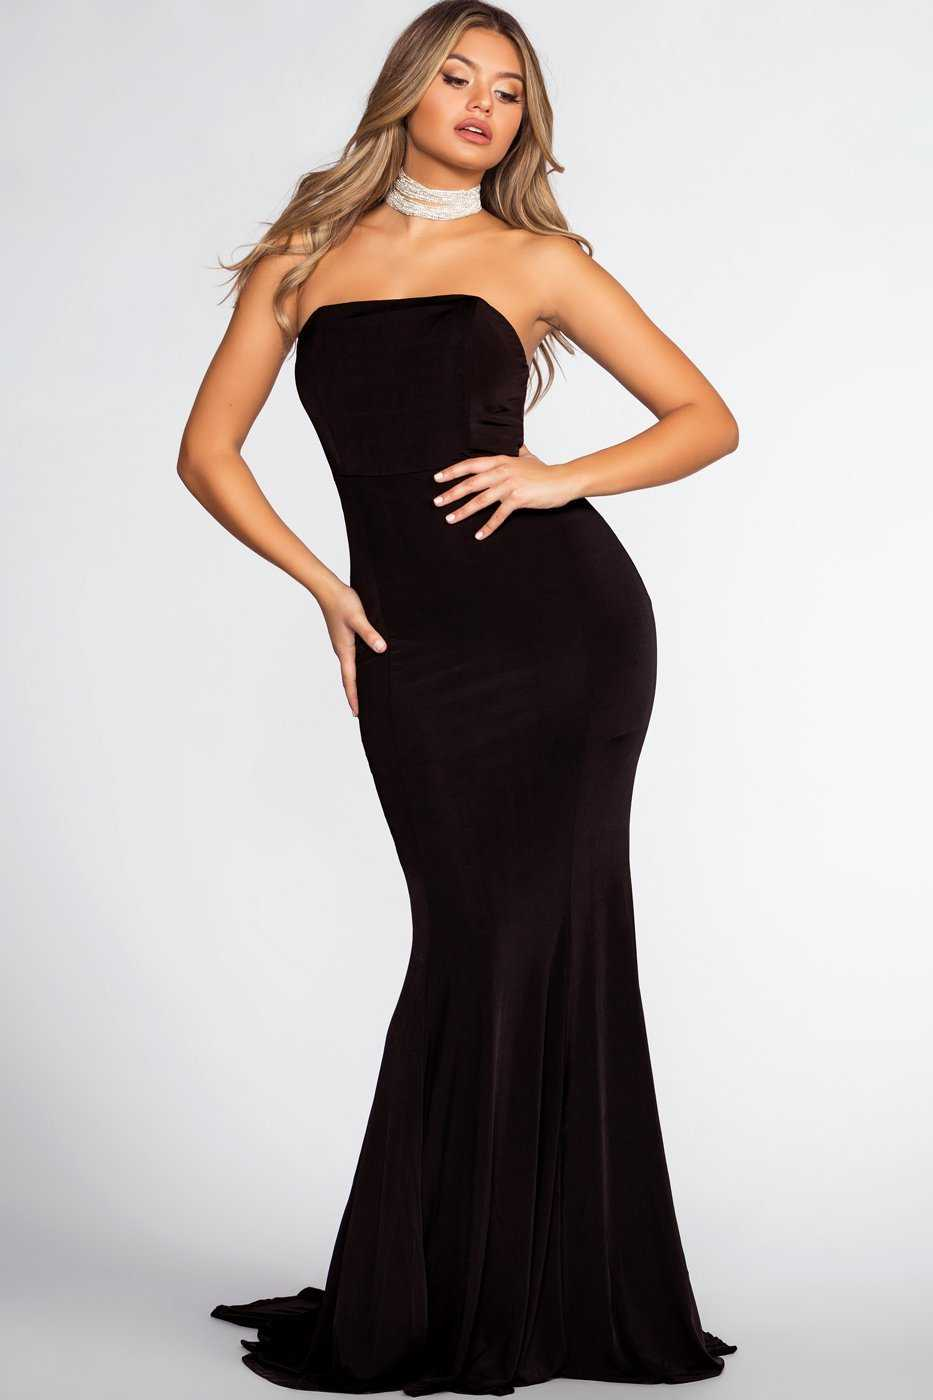 Strapless Dresses – Shop Priceless